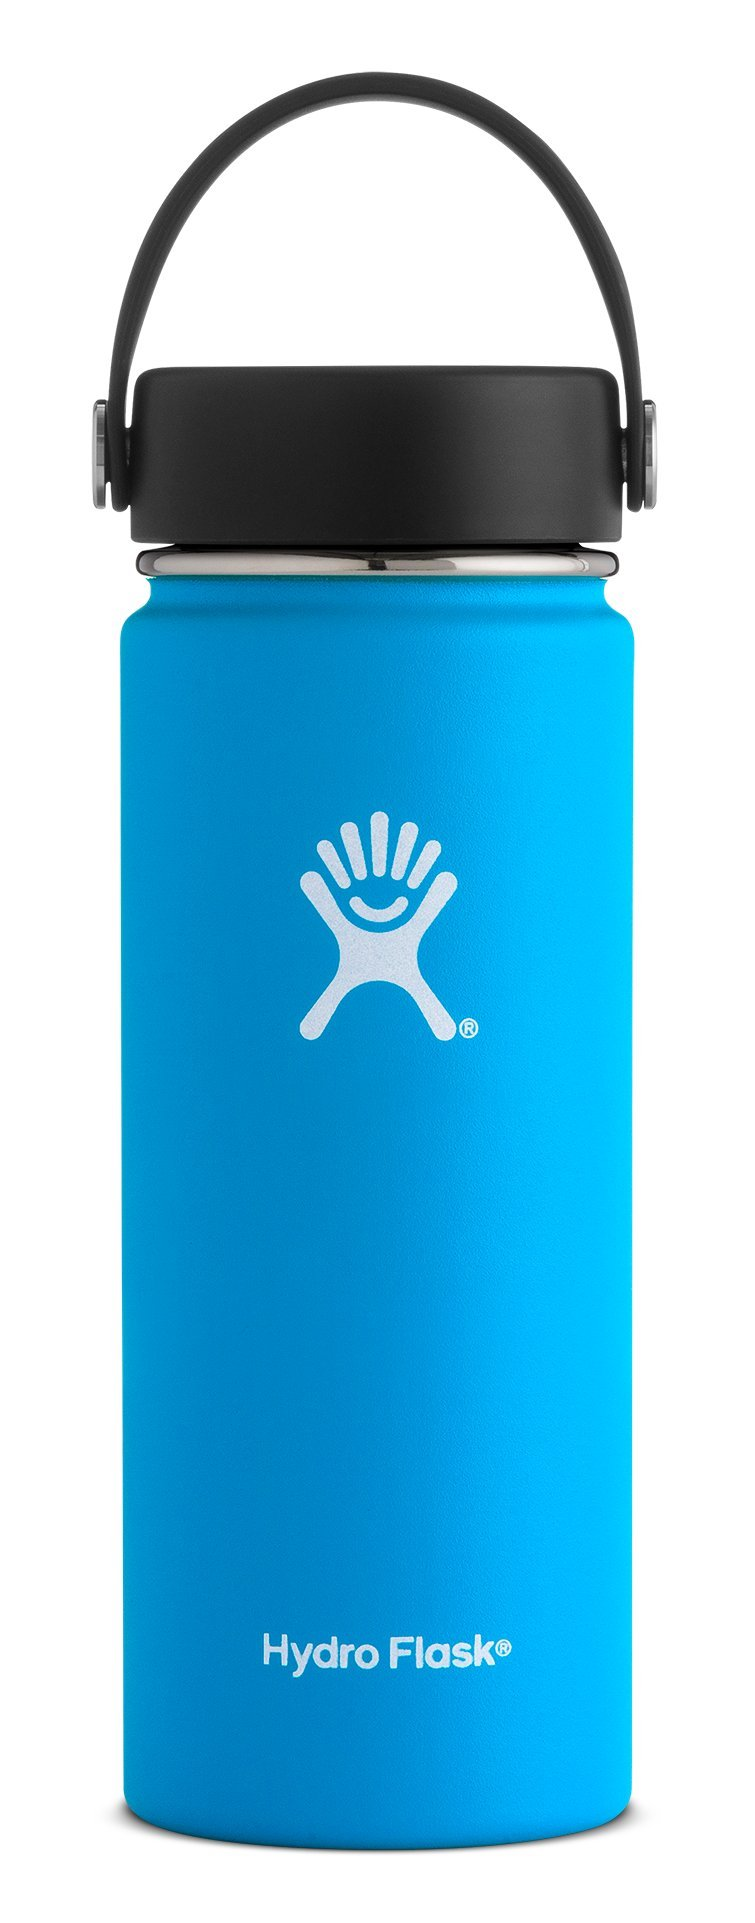 Hydro Flask 18 oz Double Wall Vacuum Insulated Stainless Steel Leak Proof Sports Water Bottle, Wide Mouth with BPA Free Flex Cap, Pacific by Hydro Flask (Image #1)